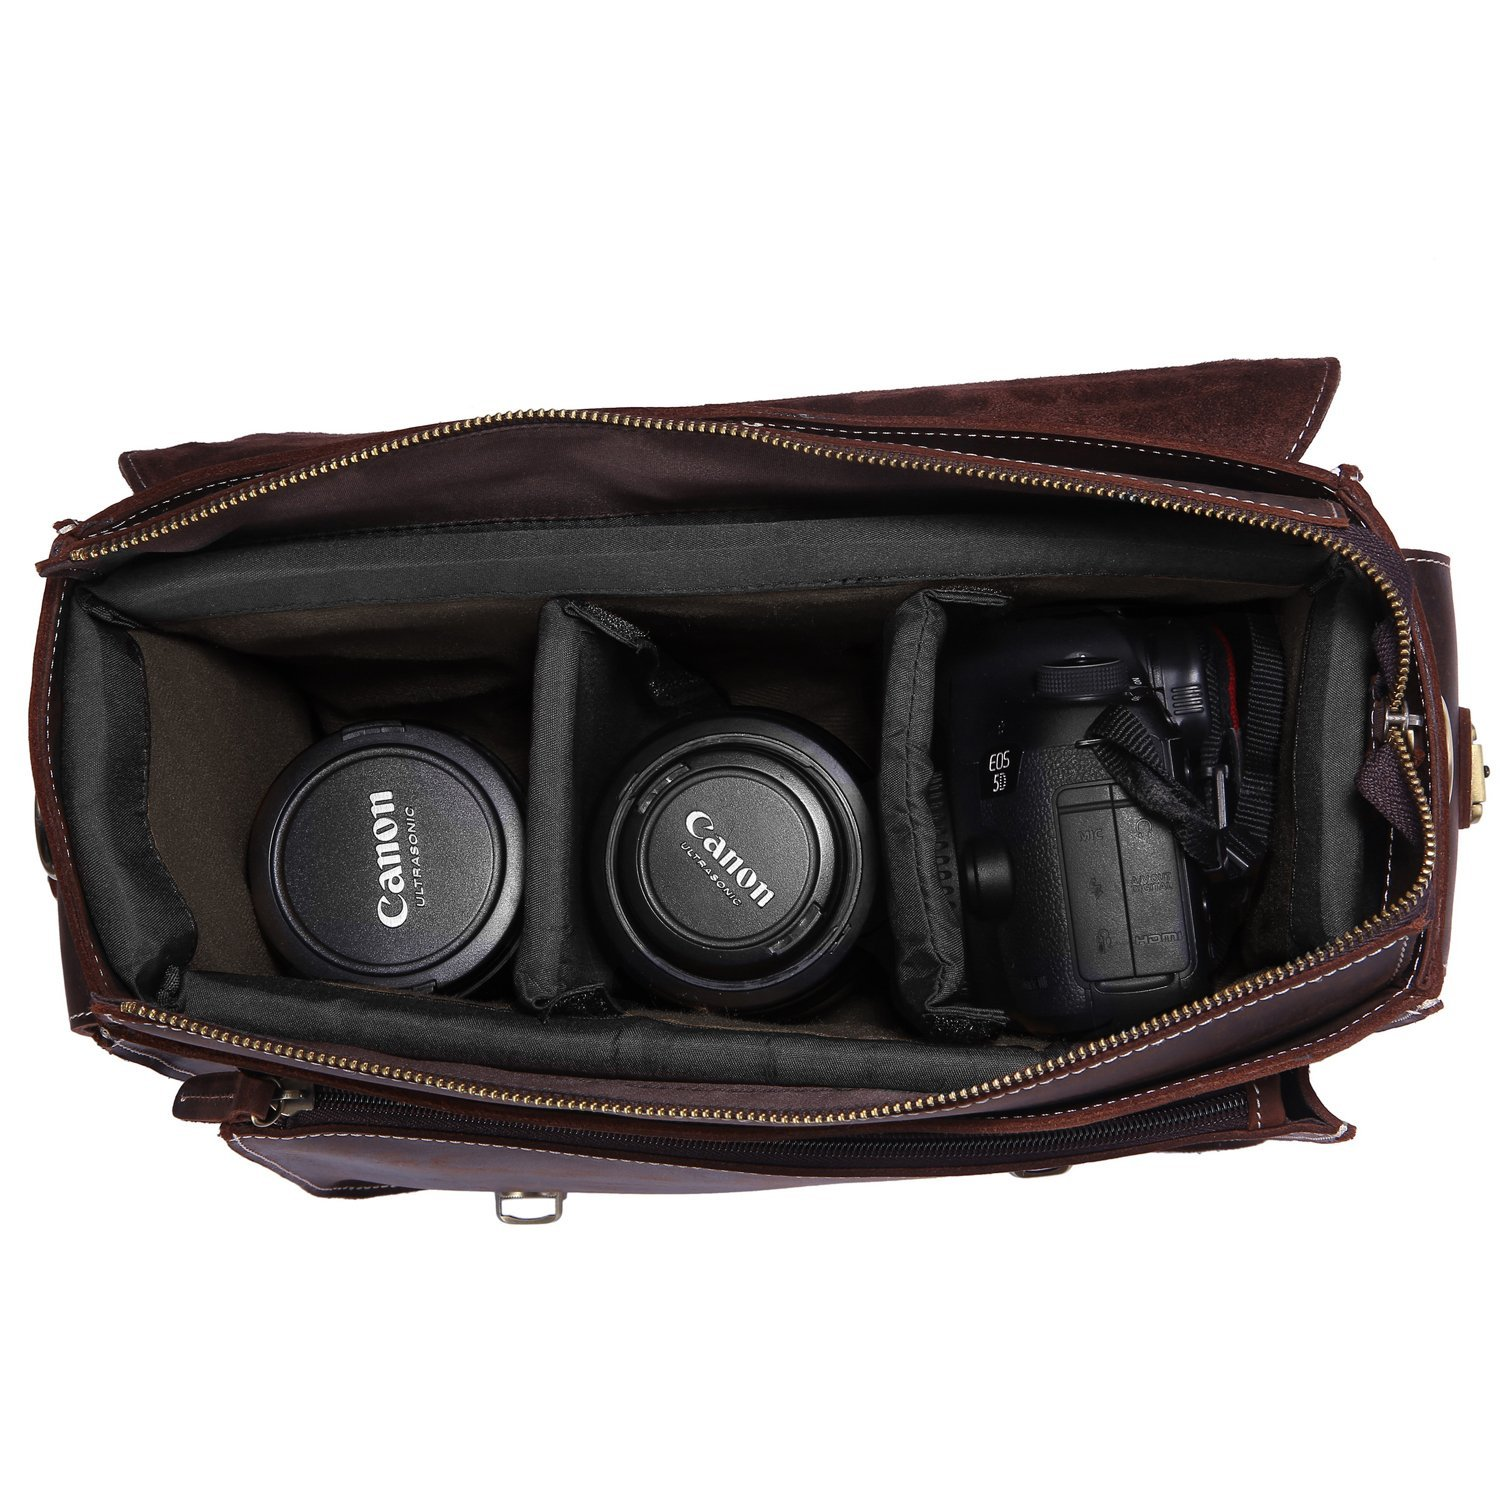 S-ZONE Leather DSLR Bag, best leather camera bags, leather bags for camera, leather camera backpack